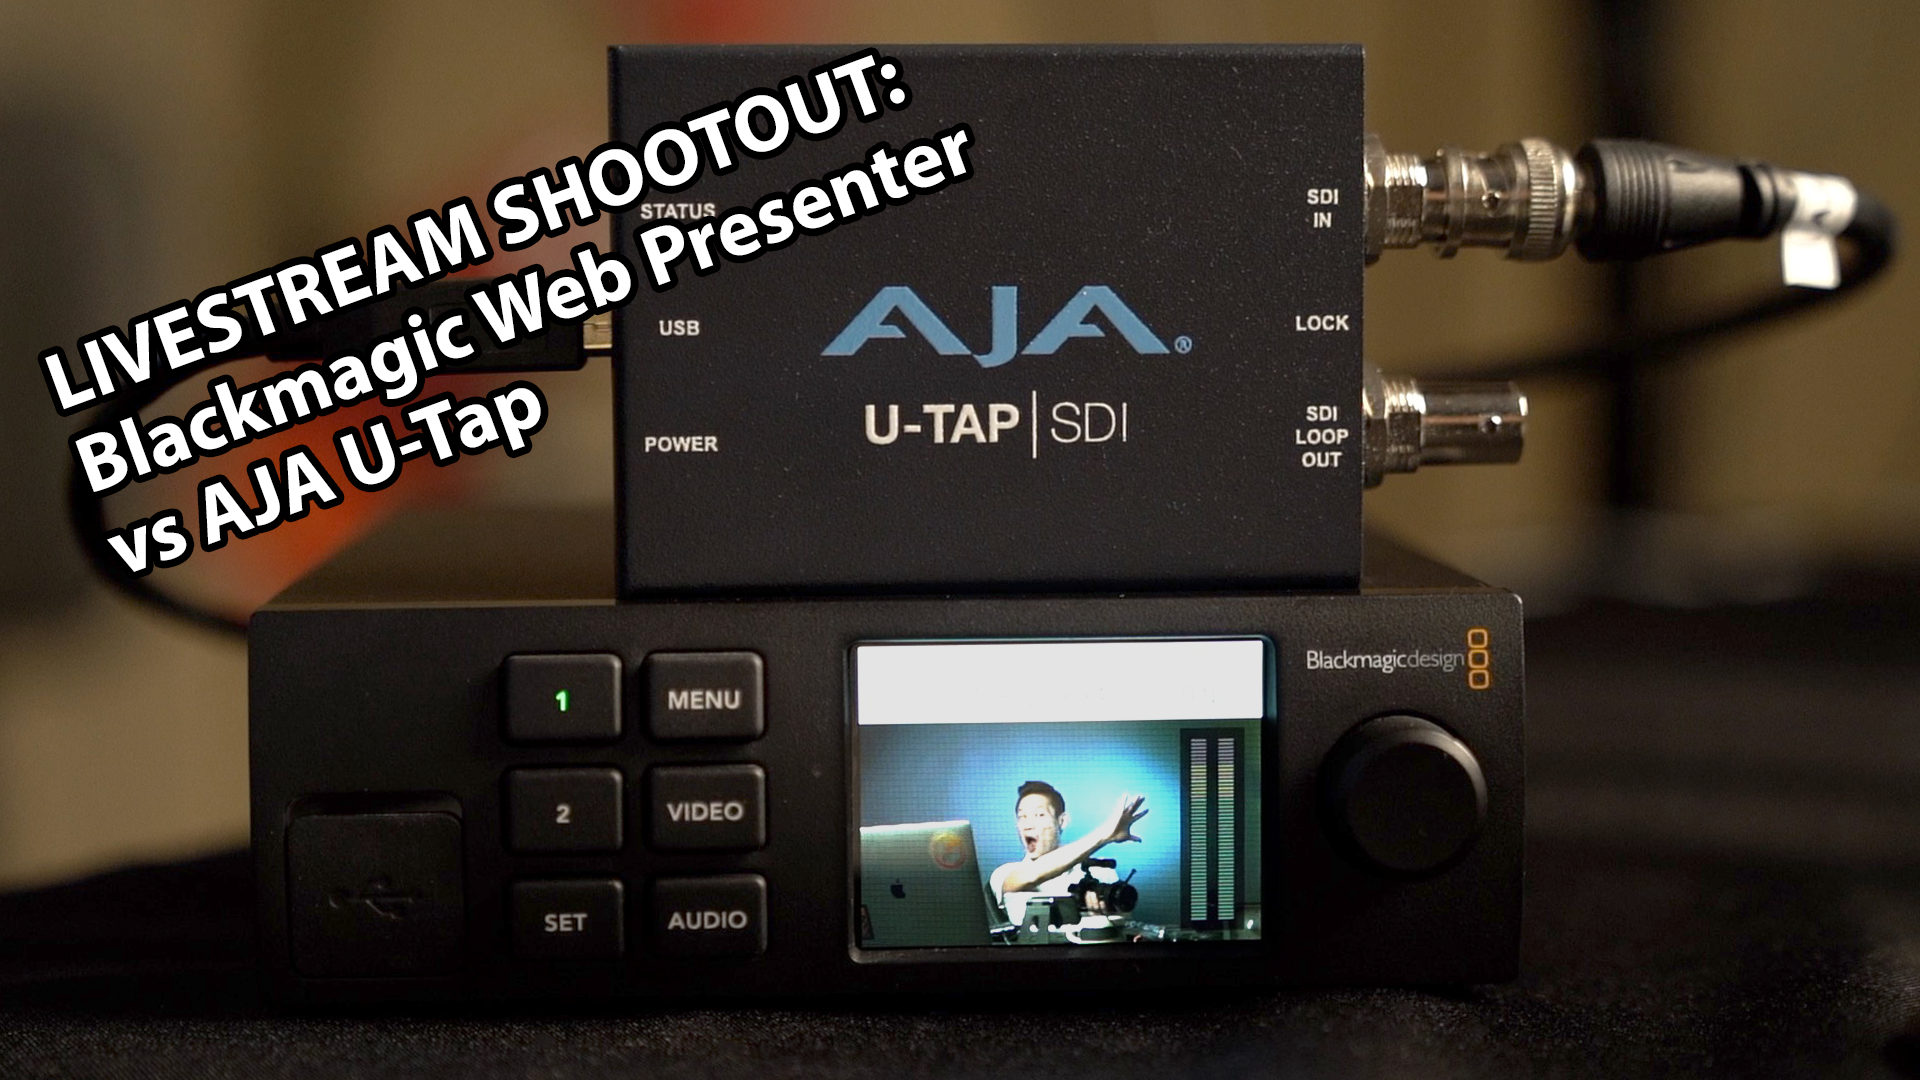 Blackmagic Web Presenter Vs Aja U Tap For Livestream And Video Capture Not So Ancient Chinese Secrets